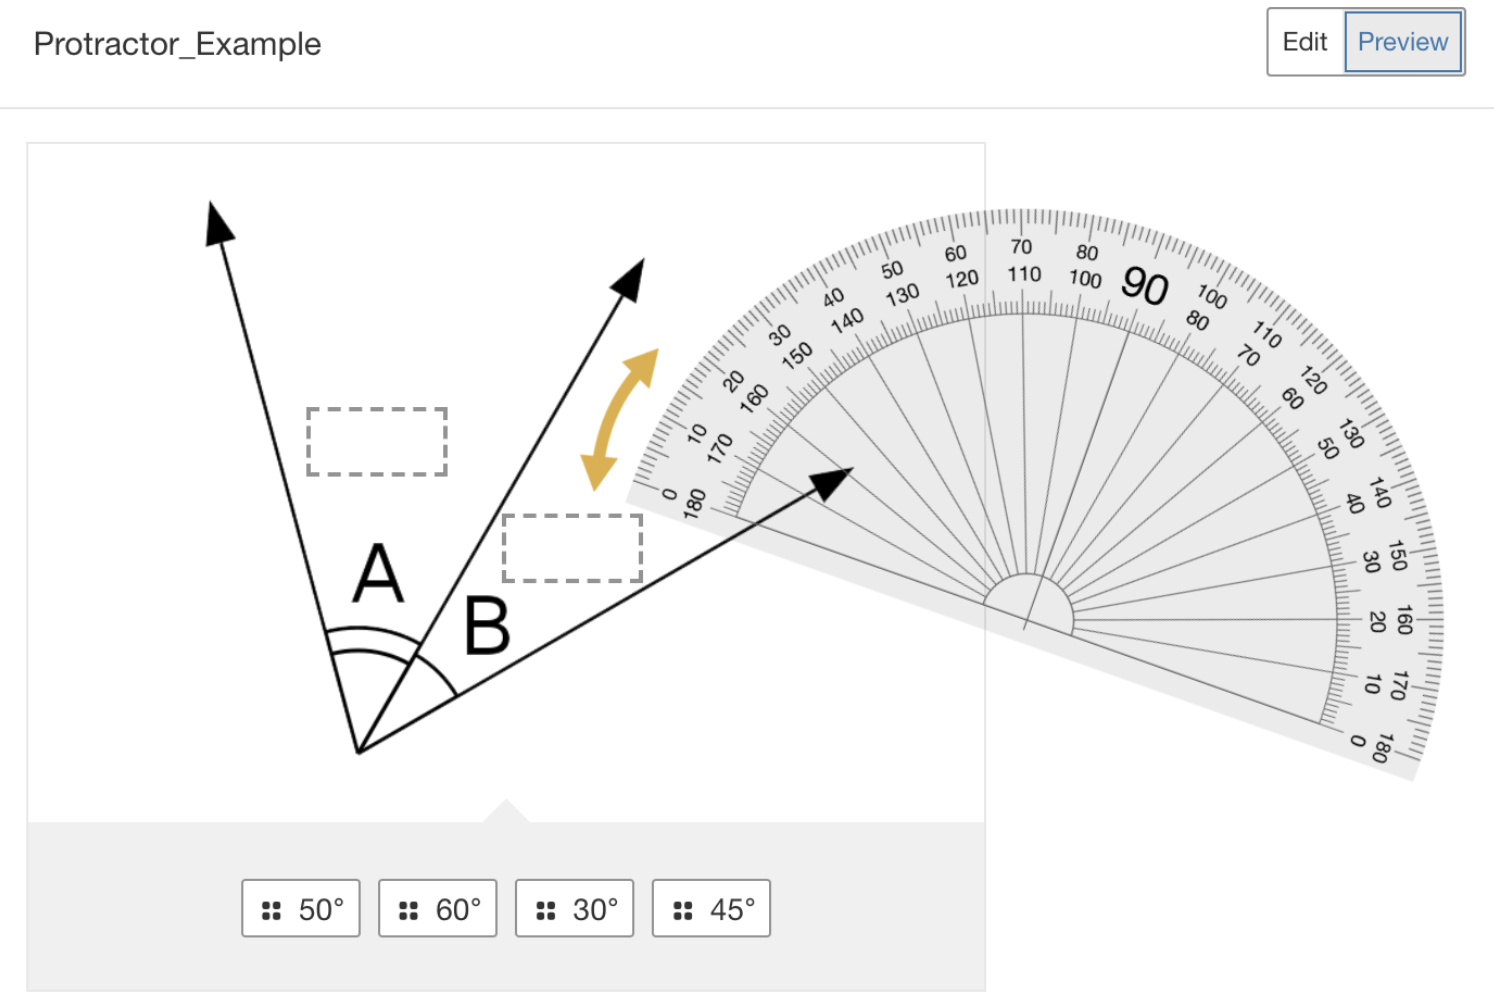 03-feature-protractor-example.png